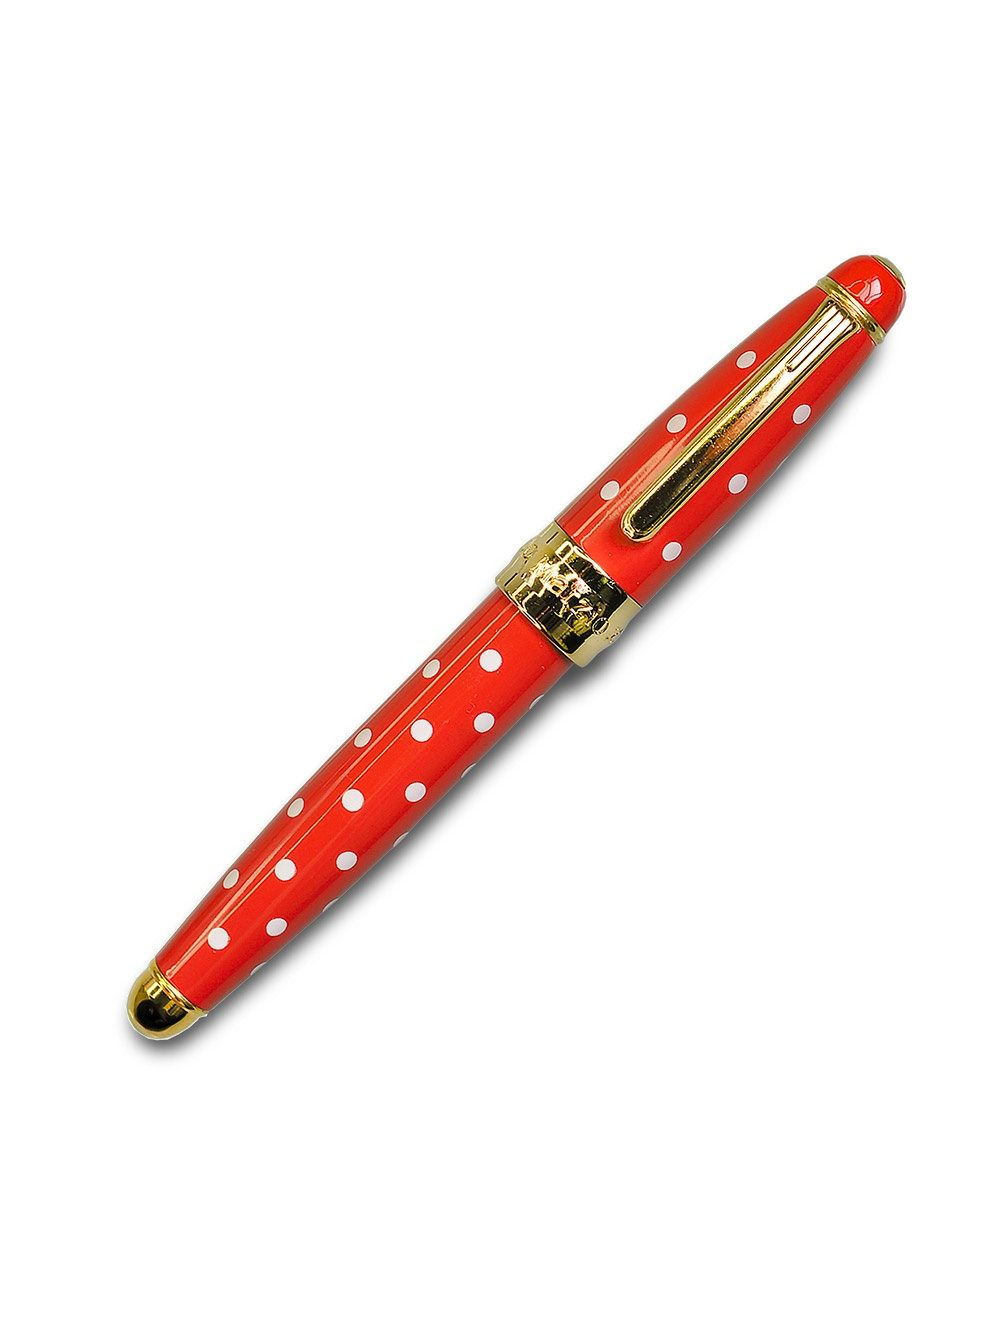 Mipo Fountain Pen - Cherry Red